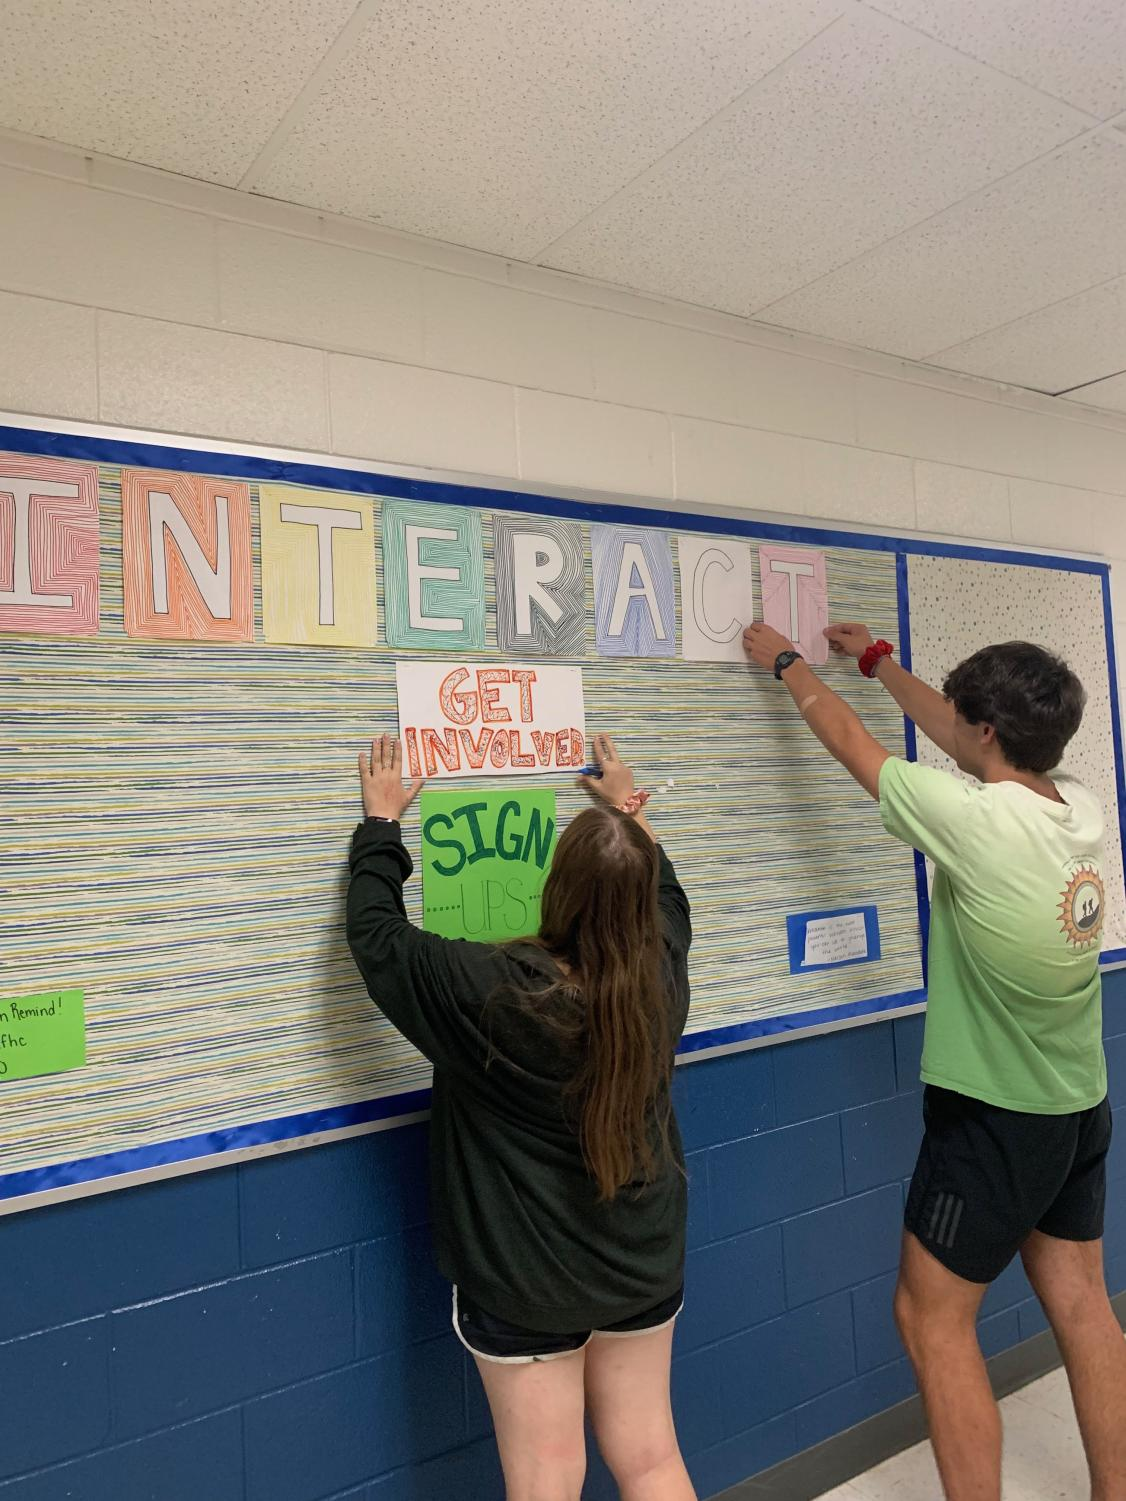 Co-presidents Margaret and Adam prepare posters for the Interact Board.